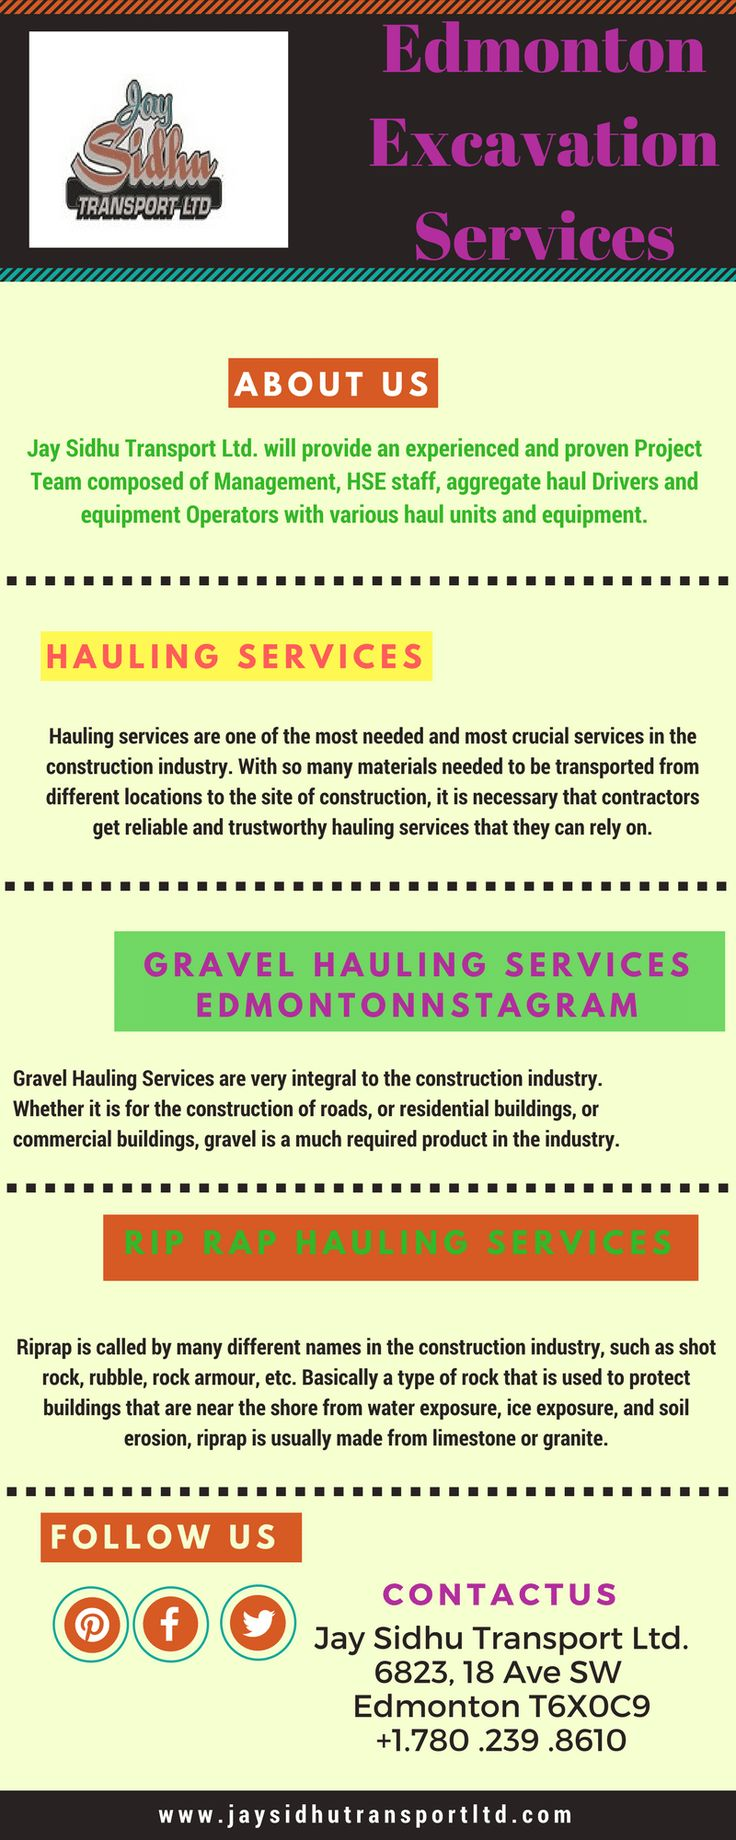 Edmonton Excavation Services Provider:  Jay Sidhu Transport is the leading organization for providing Excavation services to the construction industry in Edmonton. Contact us today Excavation Services we have best and experienced team.